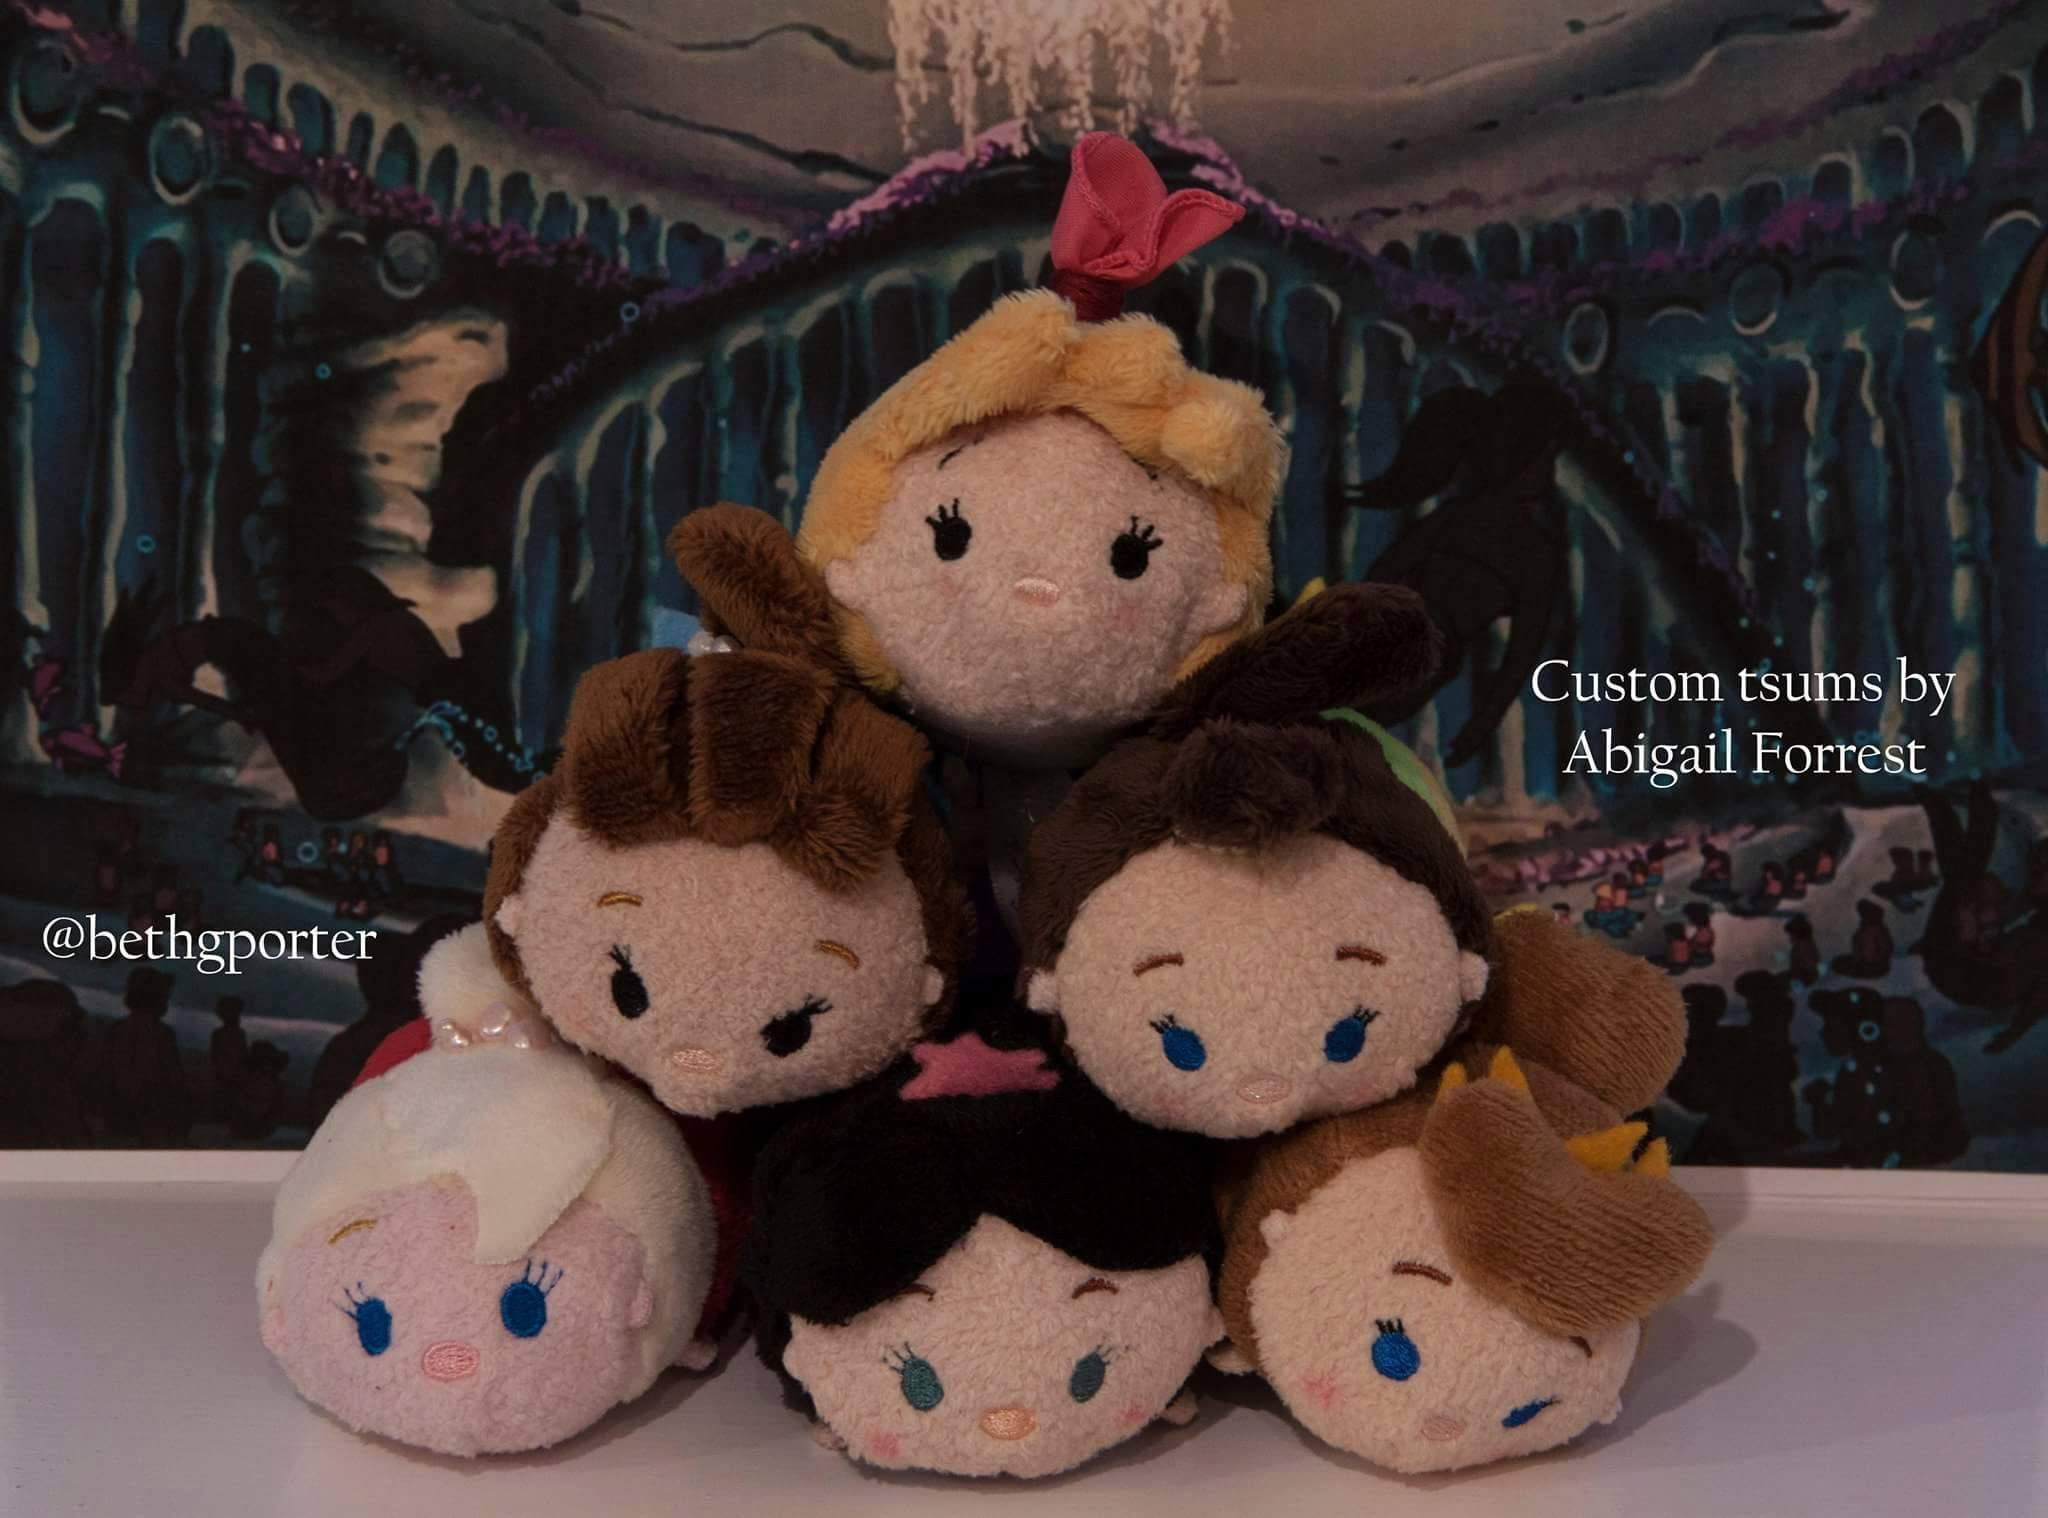 Tsum Tsums With Heart                (Abi Forrest) (1)